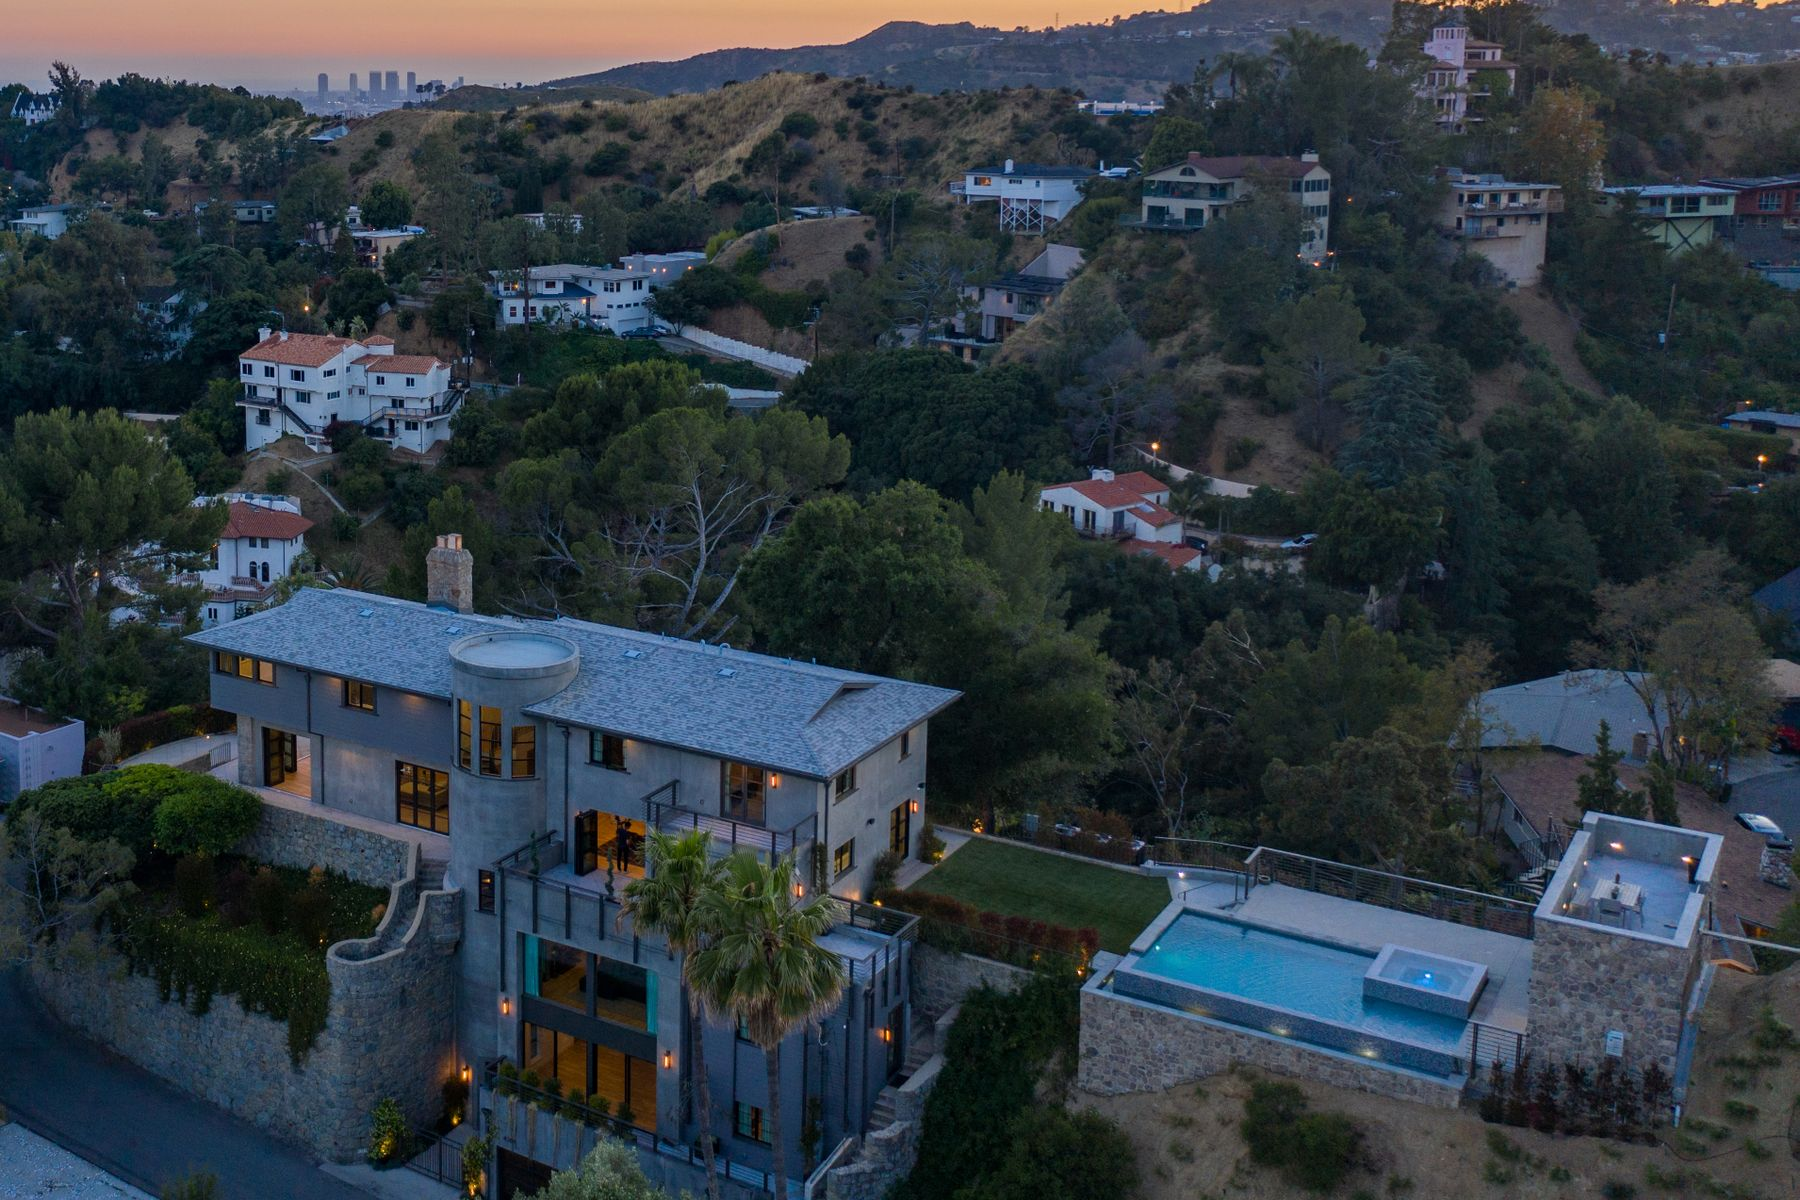 Single Family Homes for Sale at 6201 Rodgerton Drive Los Angeles, California 90068 United States